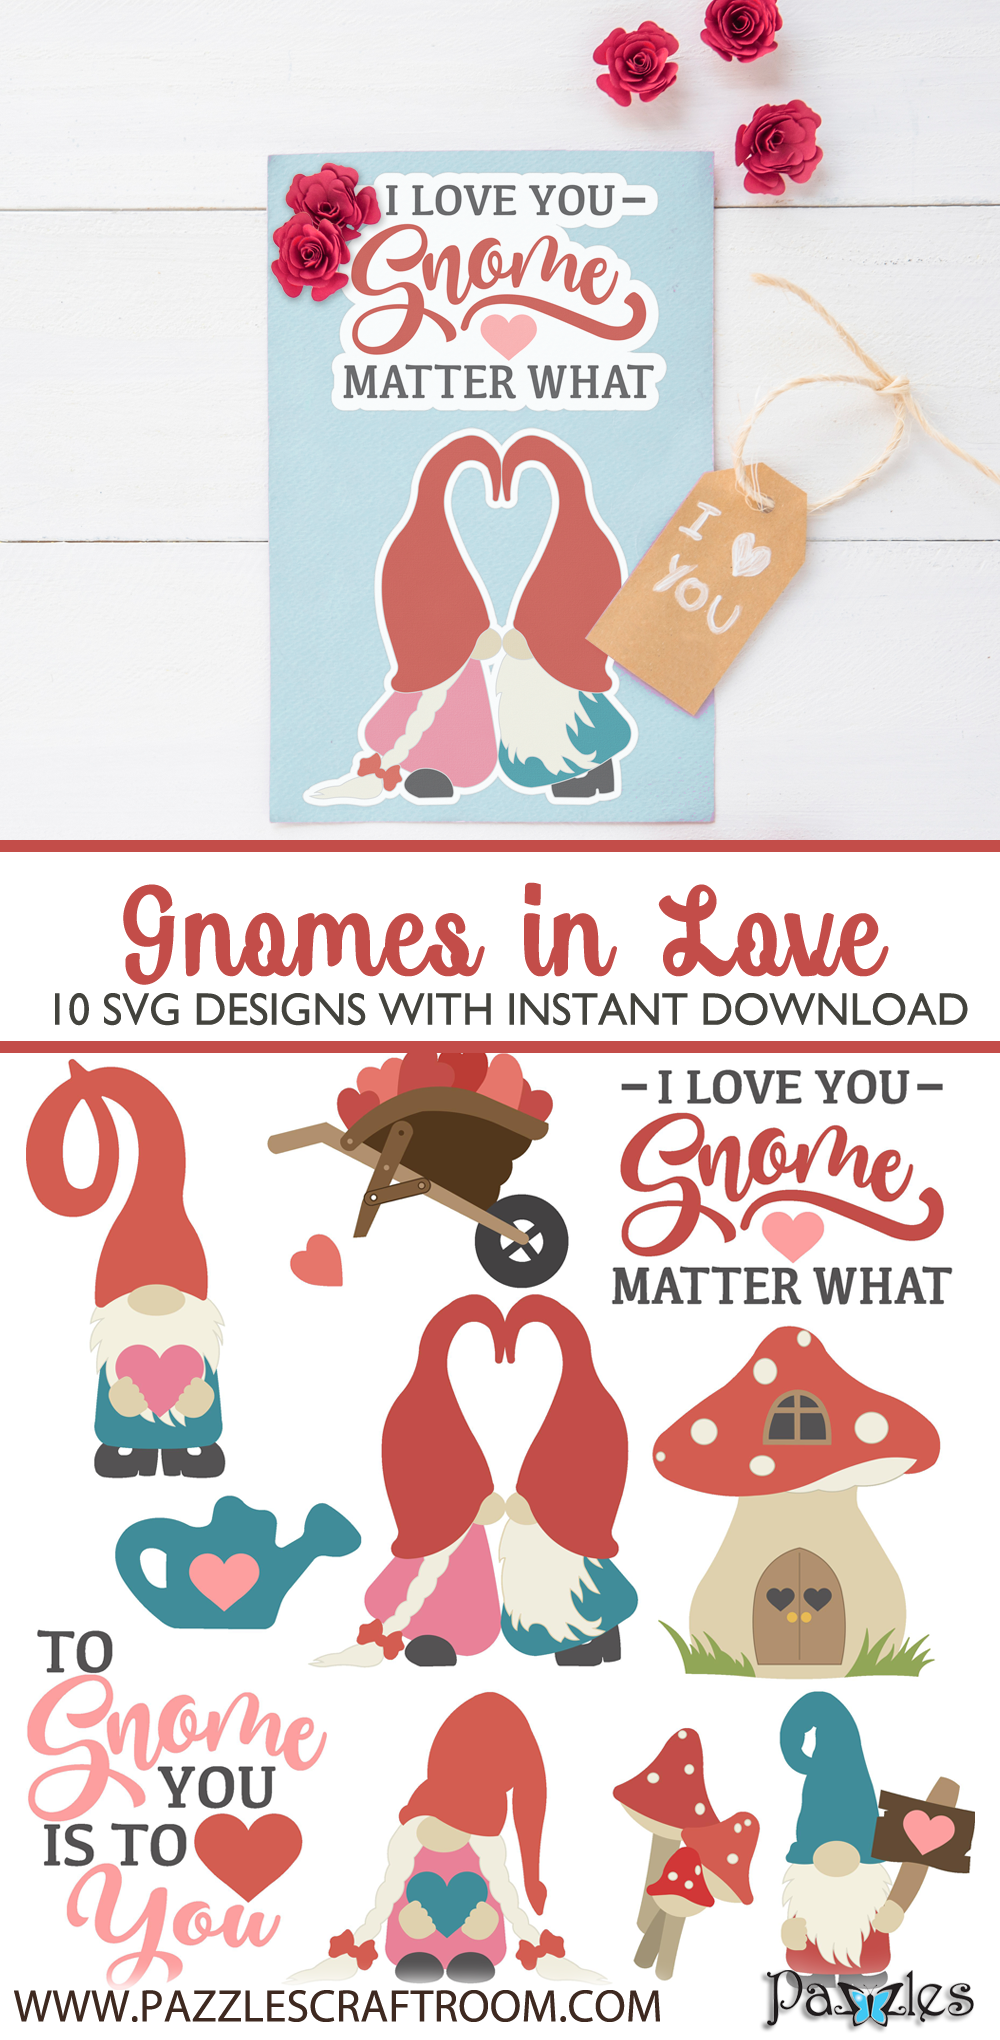 Pazzles Gnomes in Love SVG Collection of 10 Valentine's Day Gnomes in SVG, AI, and WPC. Instant download compatible with all major electronic cutters including Pazzles Inspiration, Cricut, and Silhouette Cameo. Design by Amanda Vander Woude.